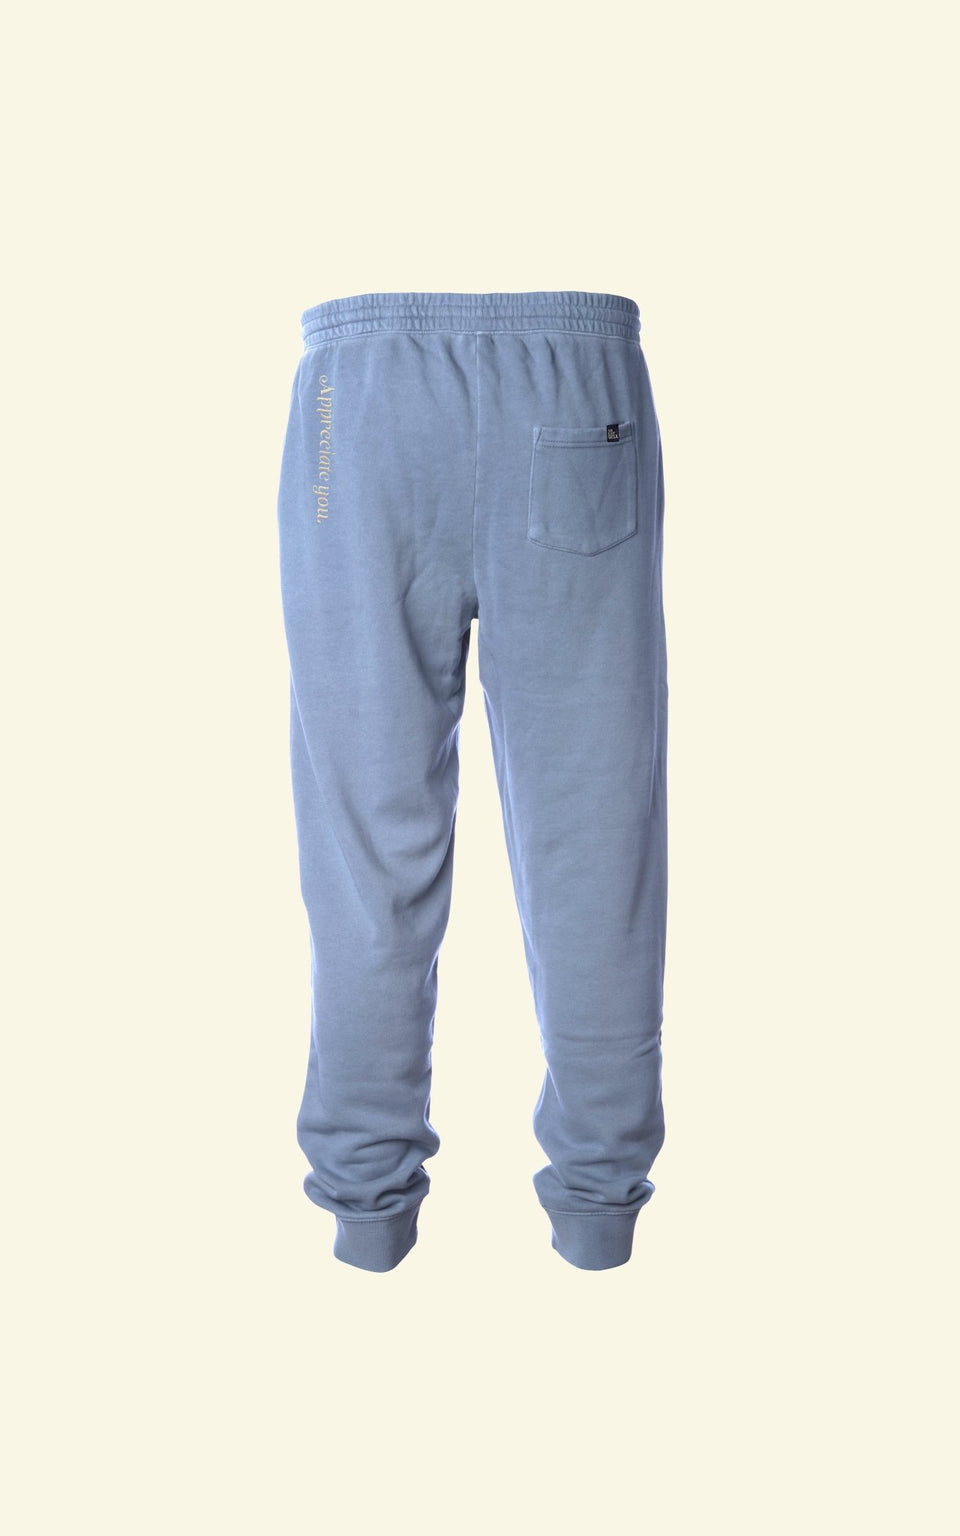 Faded Comfy AF Sweatpants in 4 Colors - MR EATWELL